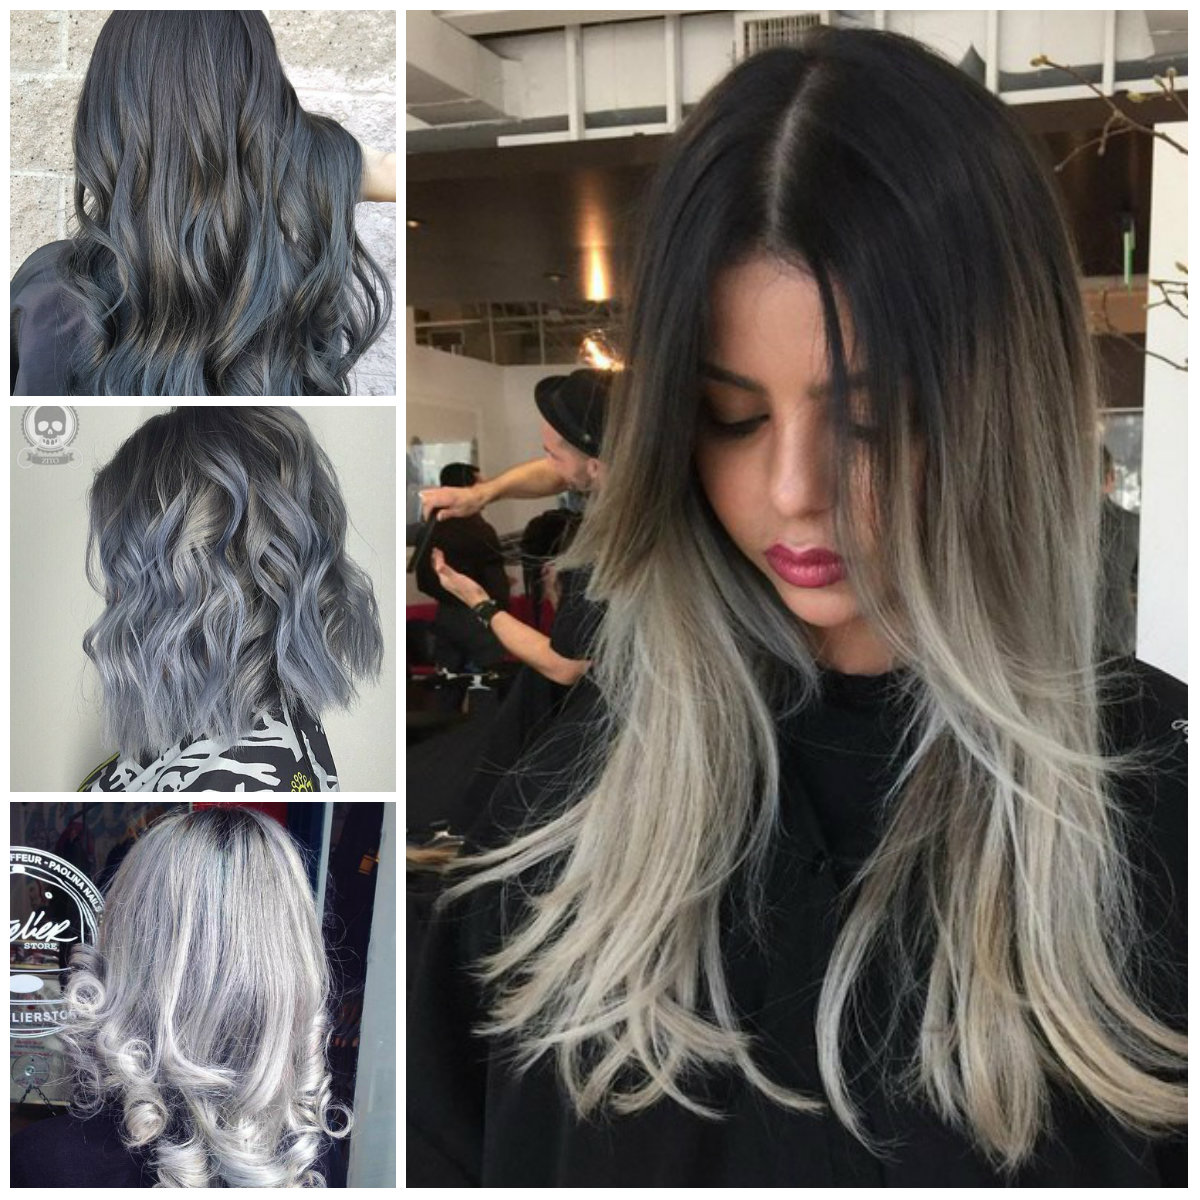 Incredible Shades of Grey Hair Trend for 2022